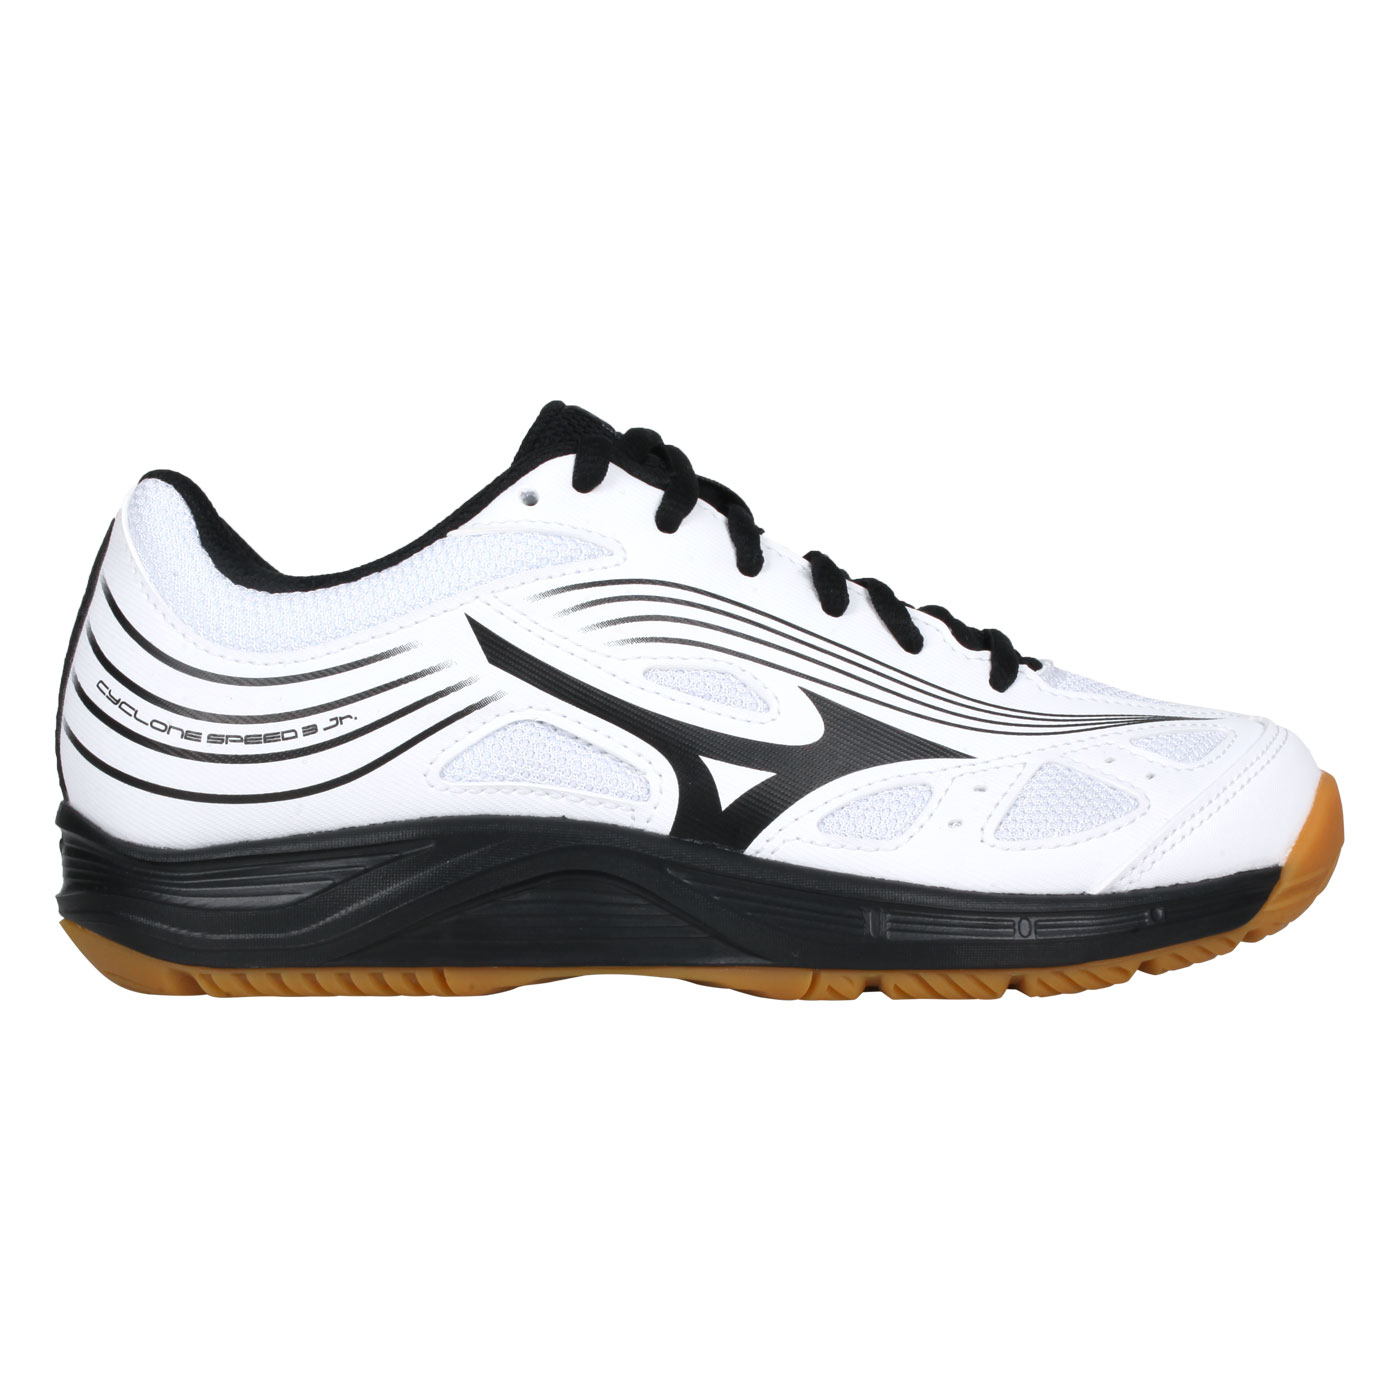 MIZUNO 中童排球鞋  @CYCLONE SPEED 3 Jr.@V1GD211009